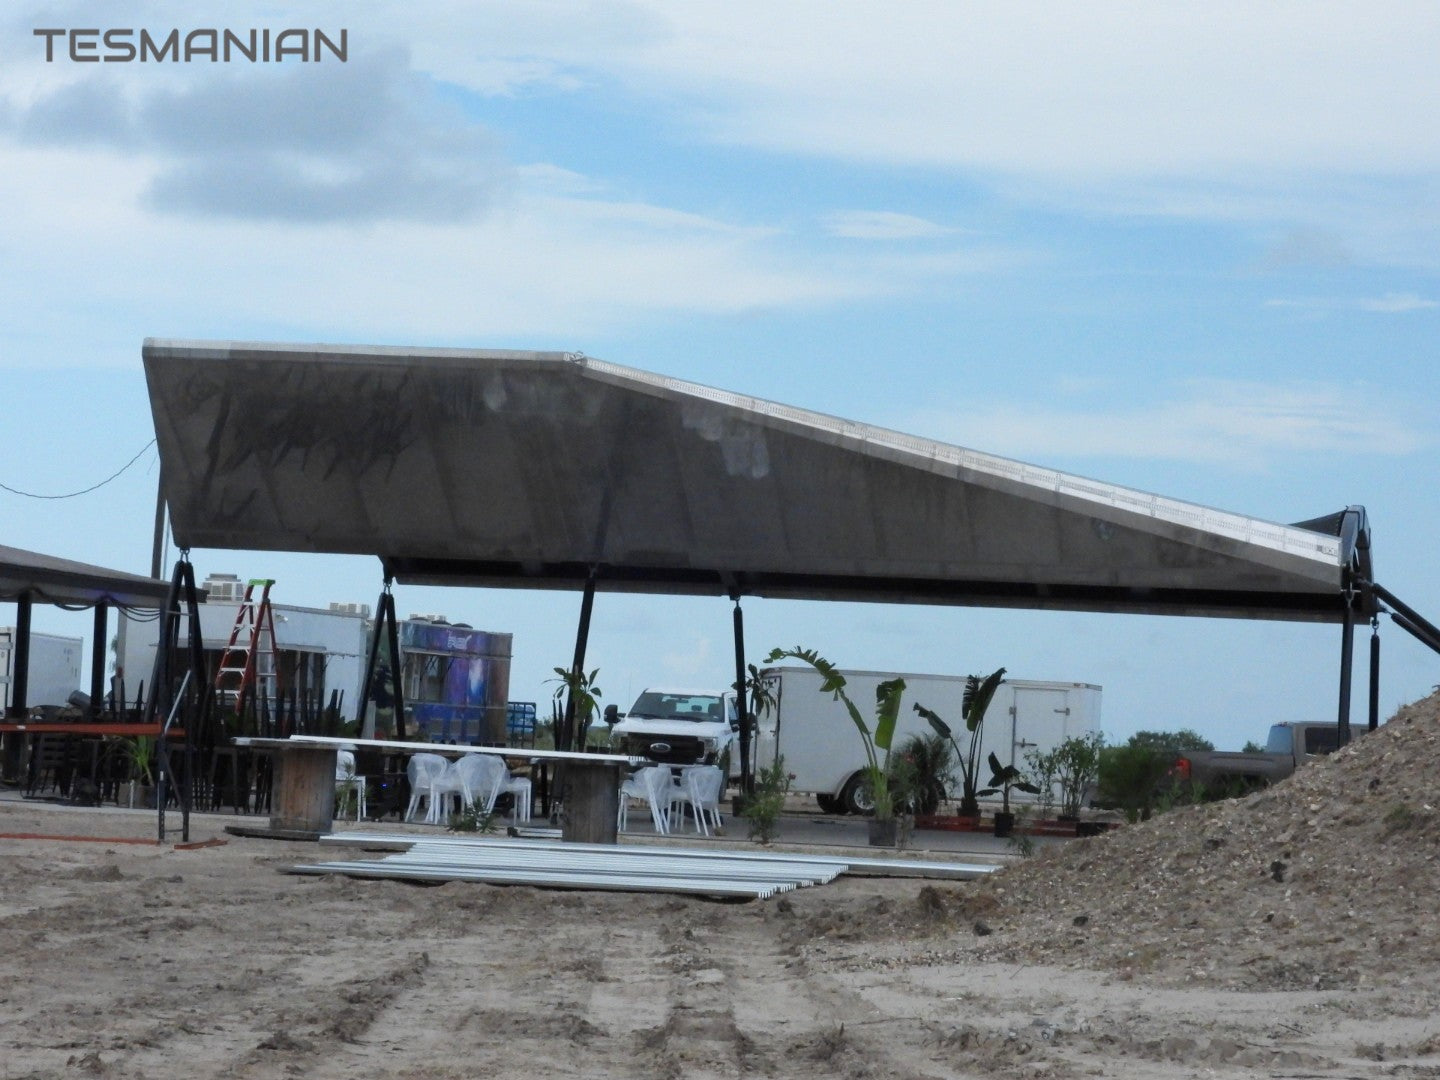 SpaceX 'Stainless-steel' Restaurant under construction as Starship SN5's test flight approaches